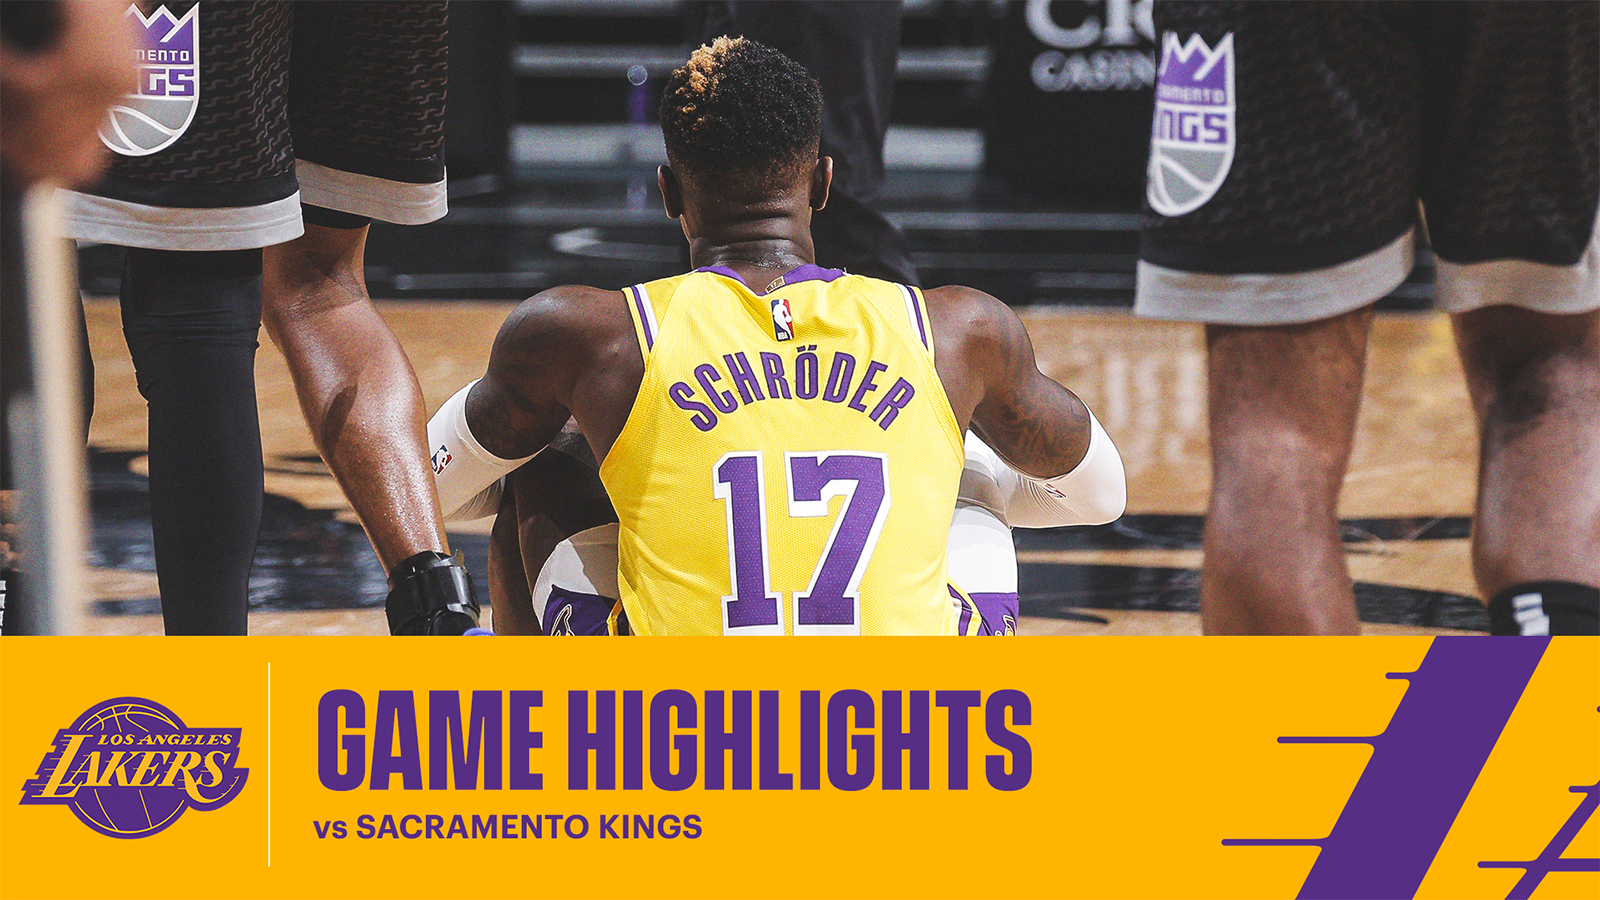 HIGHLIGHTS | Dennis Schröder (28 pts, 9 ast) vs Sacramento Kings